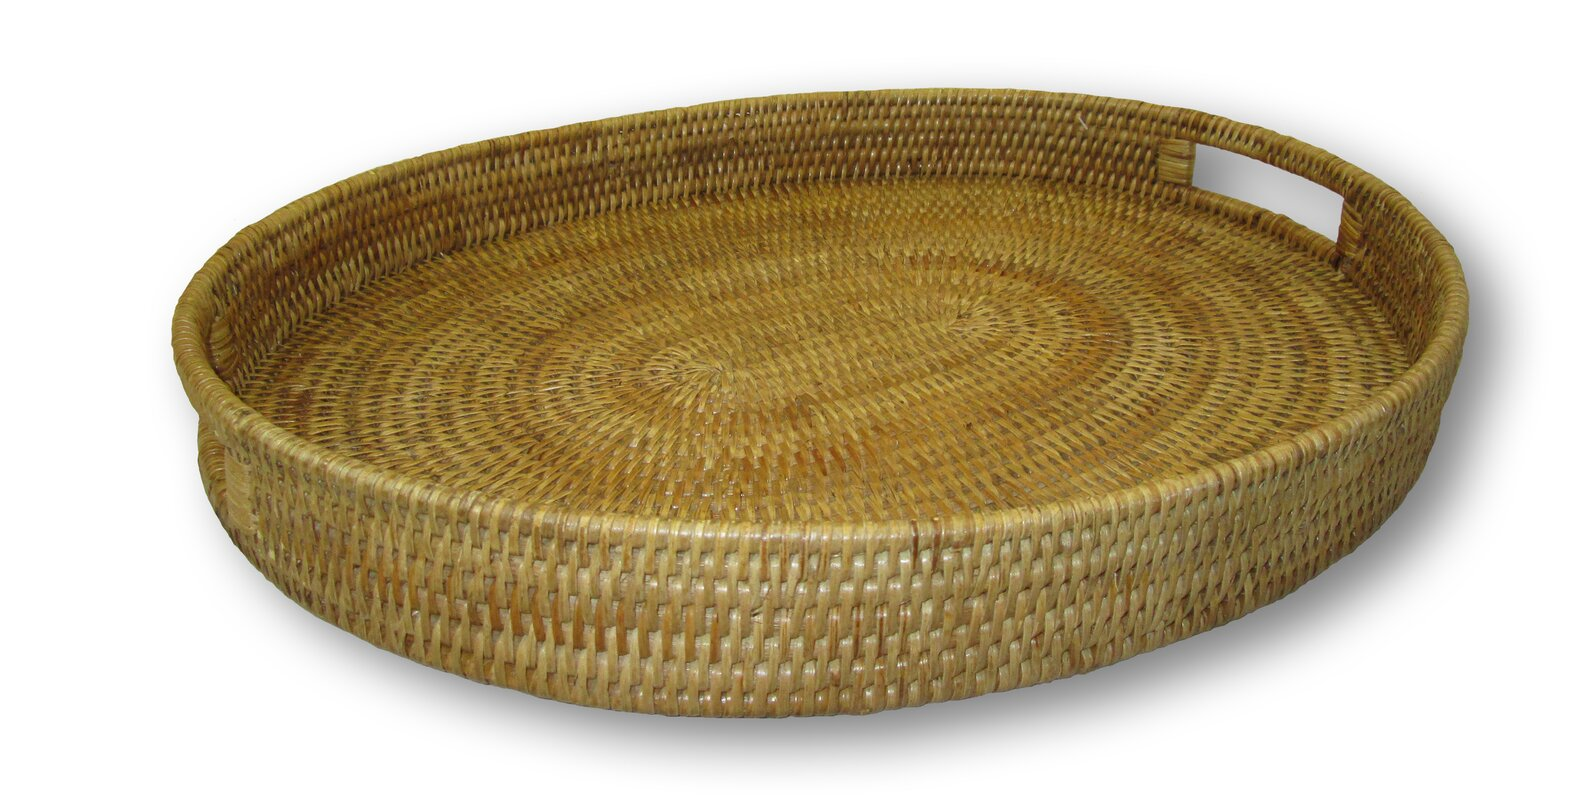 Awesome Rattan Oval Tray With Cutout Handles Ideas